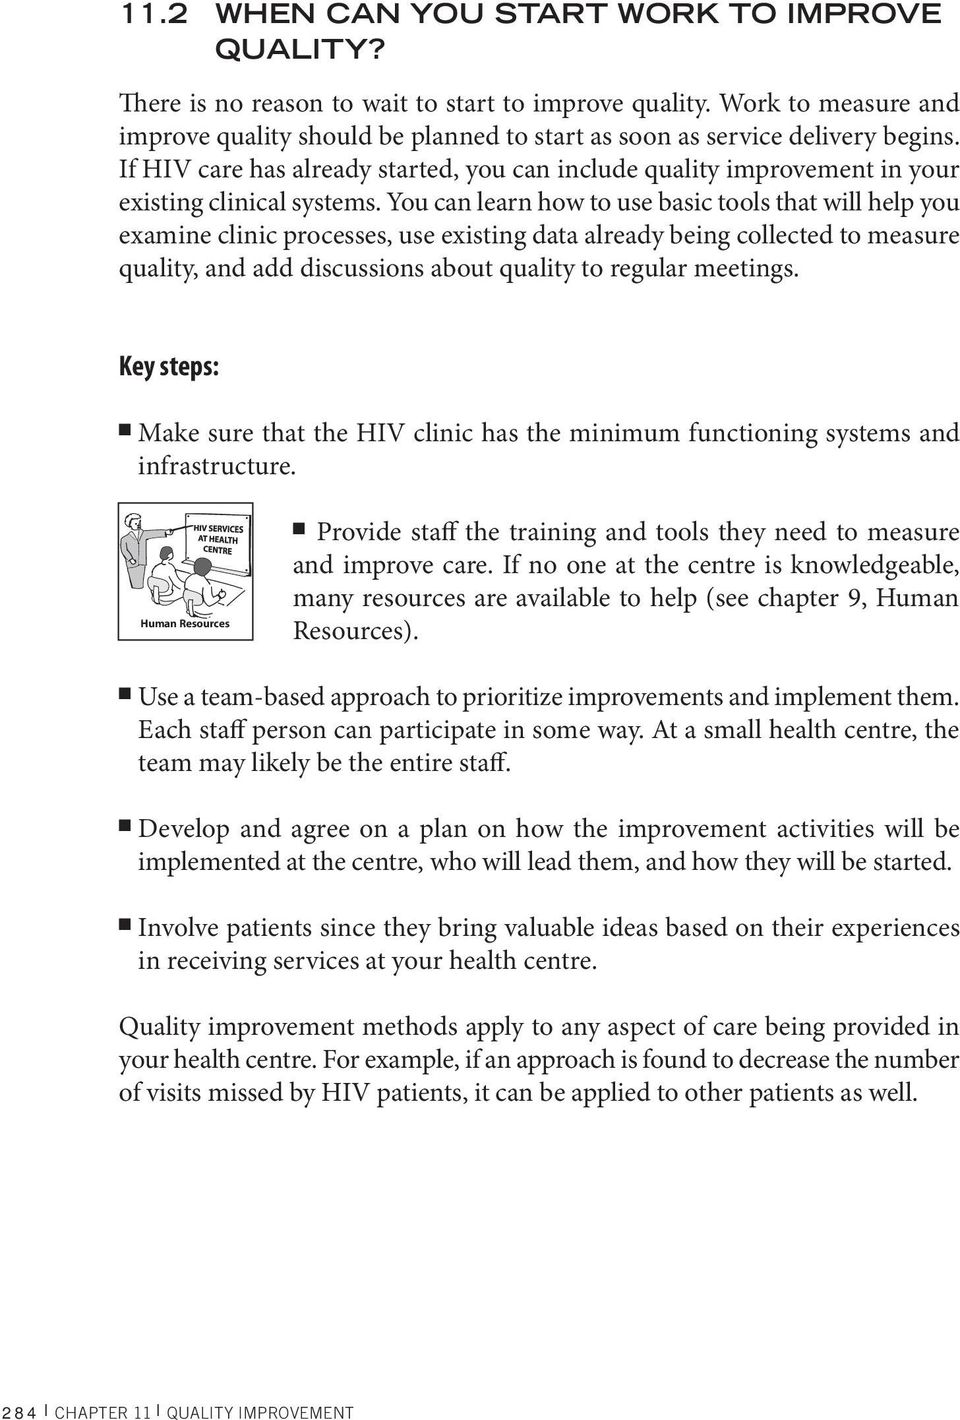 If HIV care has already started, you can include quality improvement in your existing clinical systems.